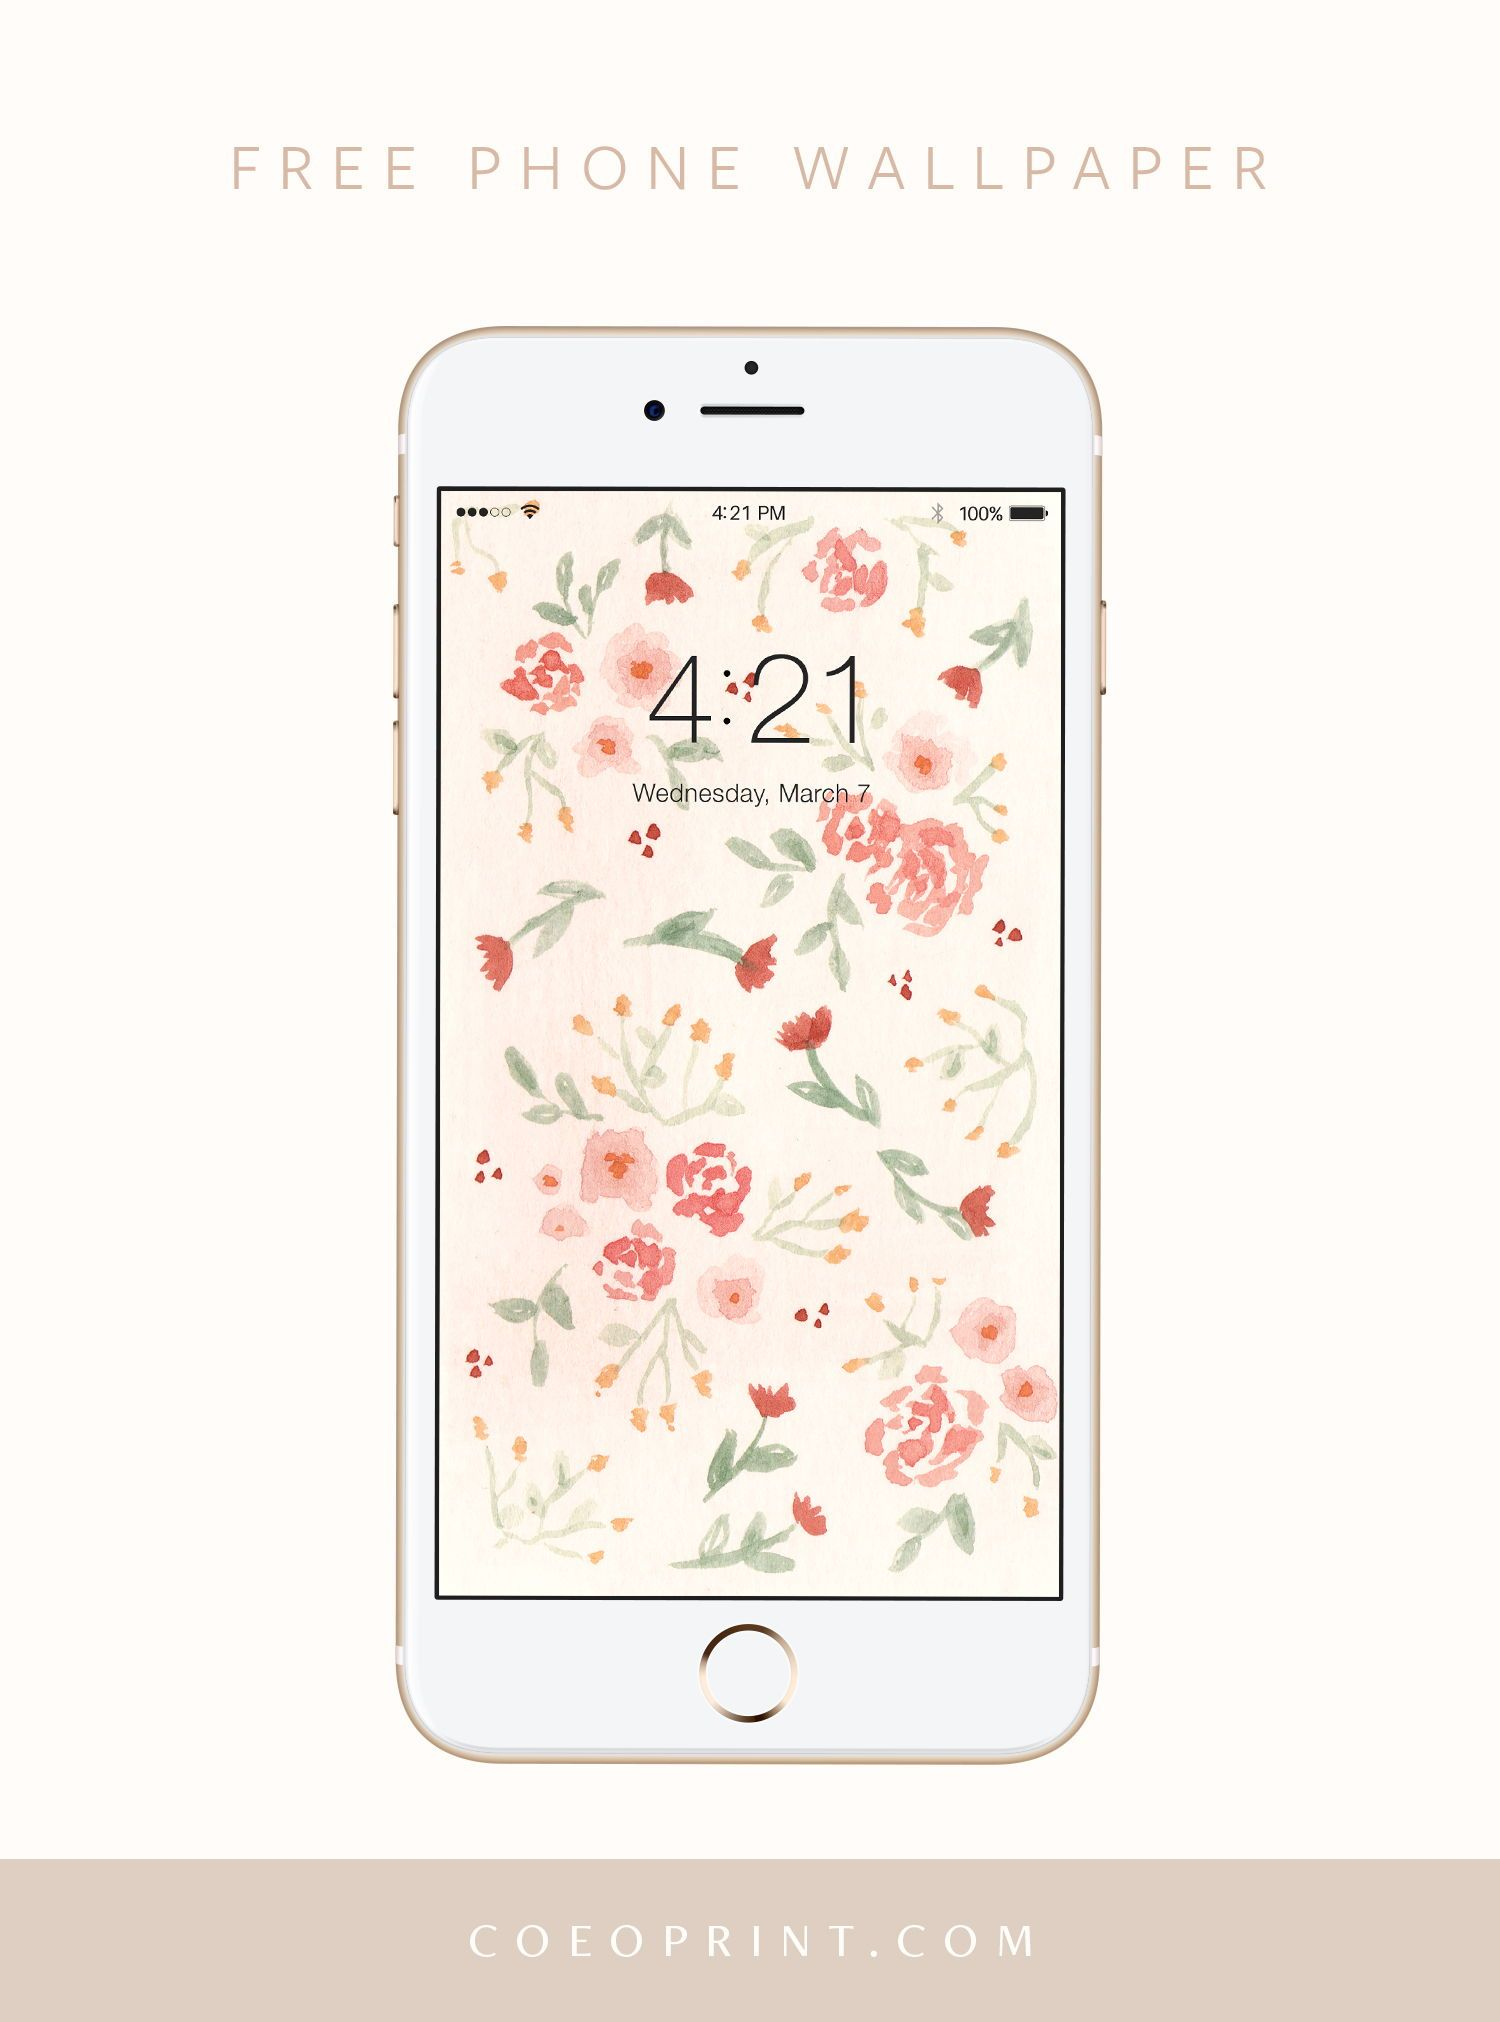 Free Phone Wallpaper Floral Wallpaper Iphone Simple Phone Wallpapers Free Phone Wallpaper